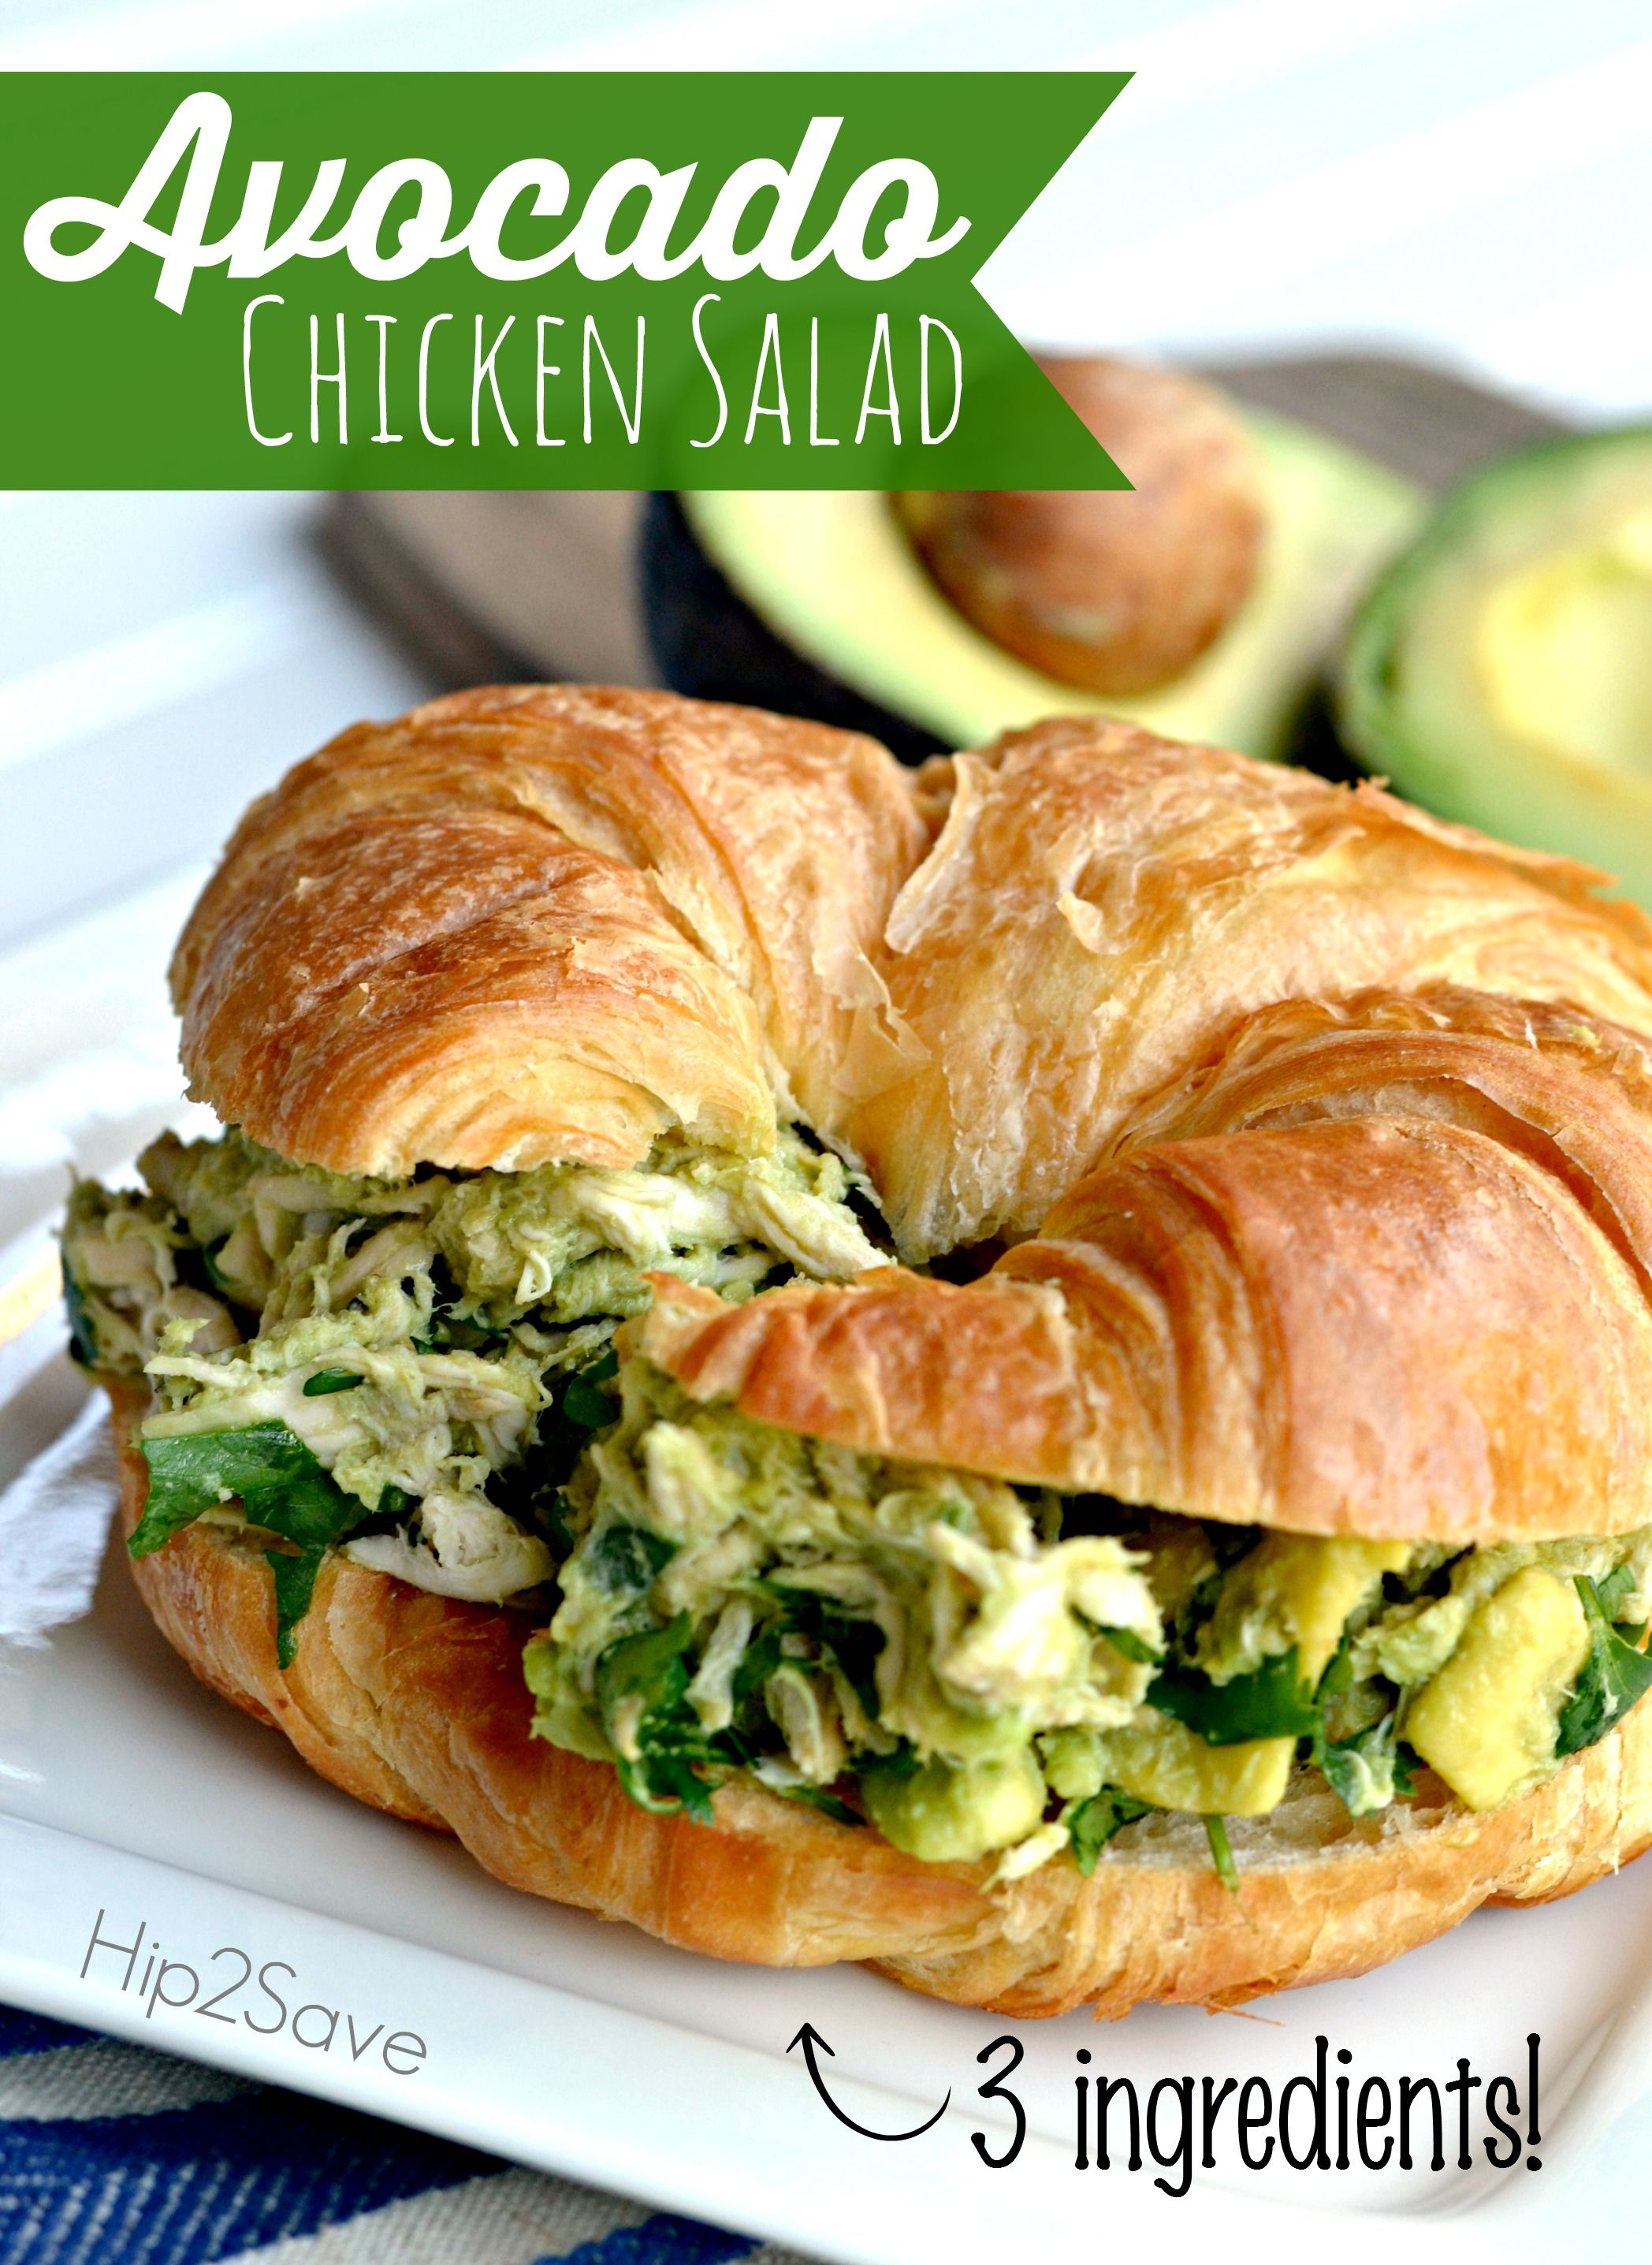 Try this easy and healthy avocado chicken salad on bread, croissants, pita, lettuce leaves, or on top of additional sliced avocado.